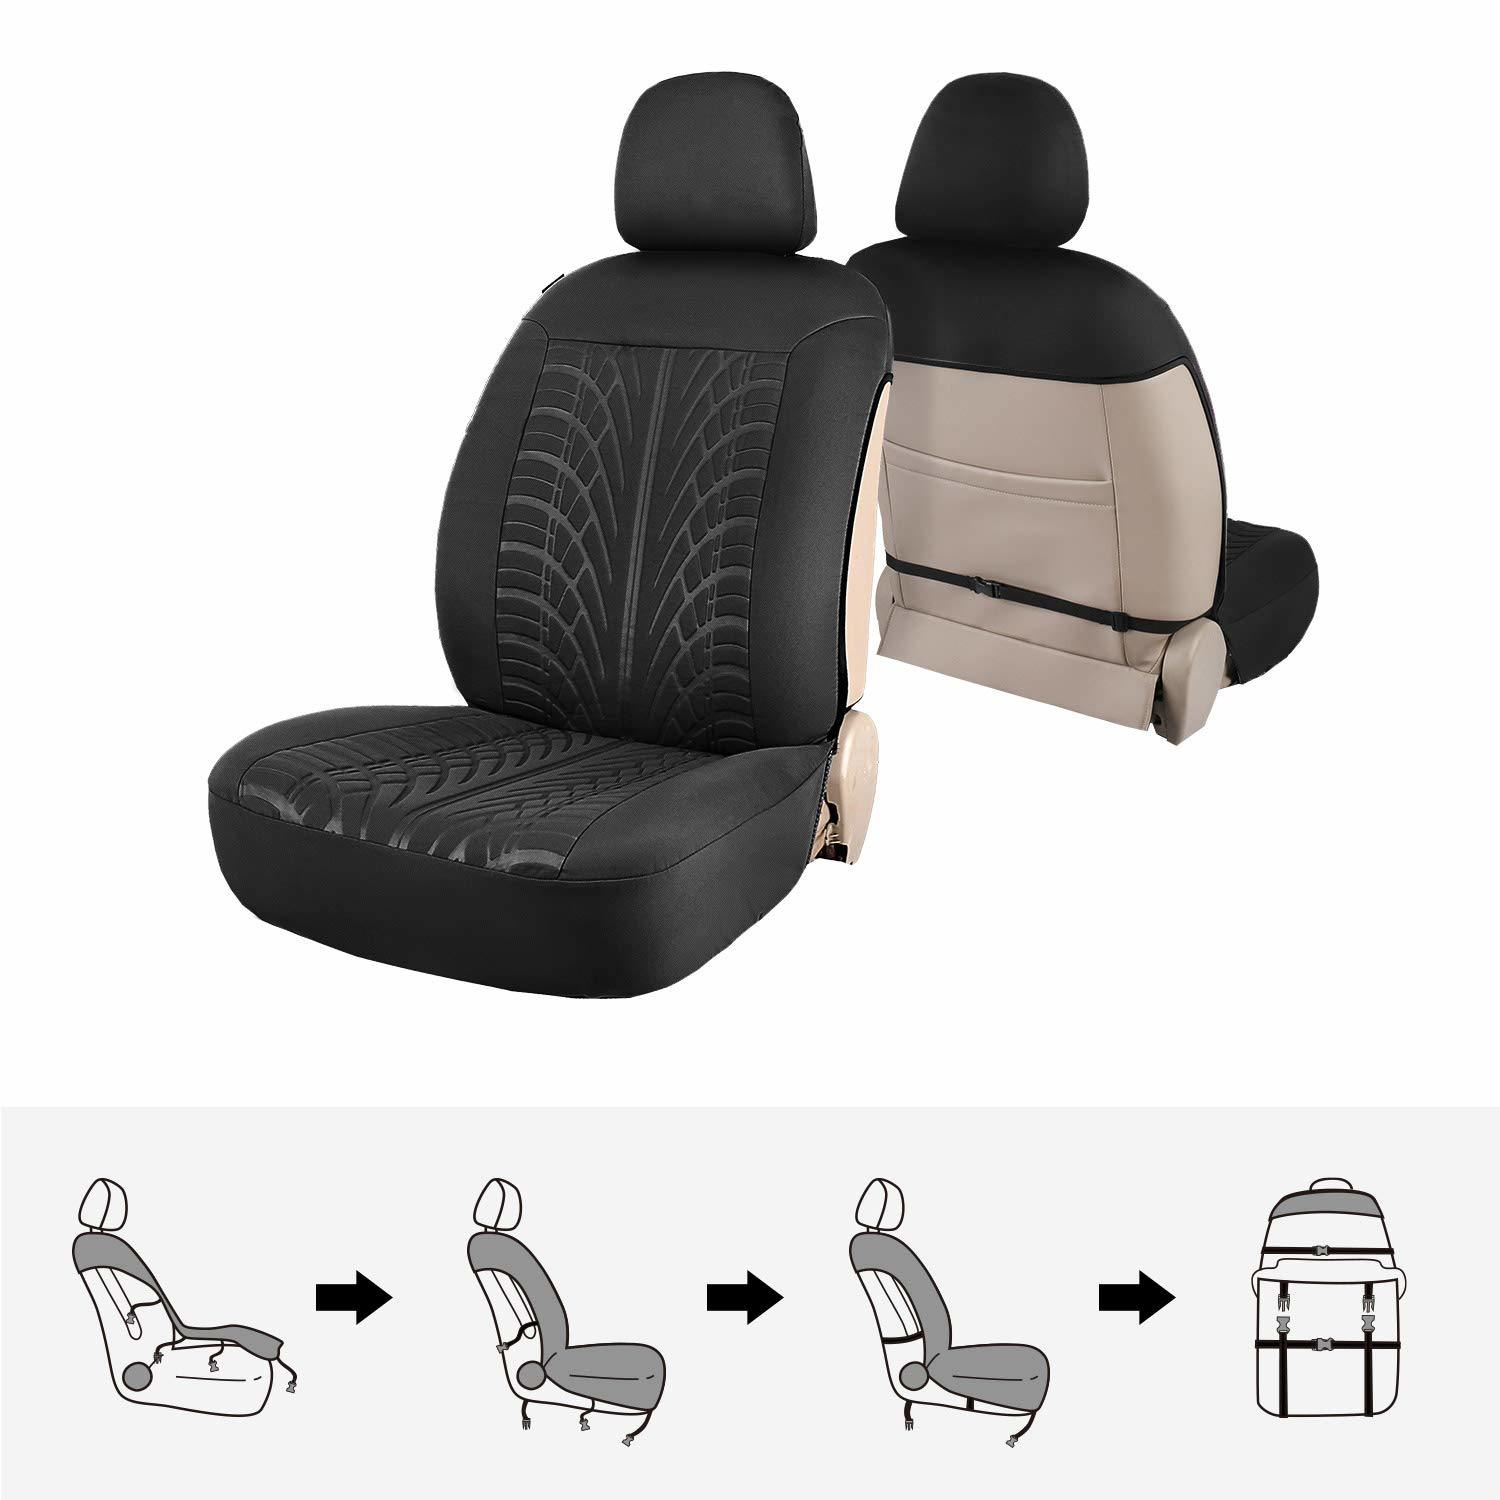 Wondrous China Leather Black Auto Sideless Seat Covers Full Set Andrewgaddart Wooden Chair Designs For Living Room Andrewgaddartcom